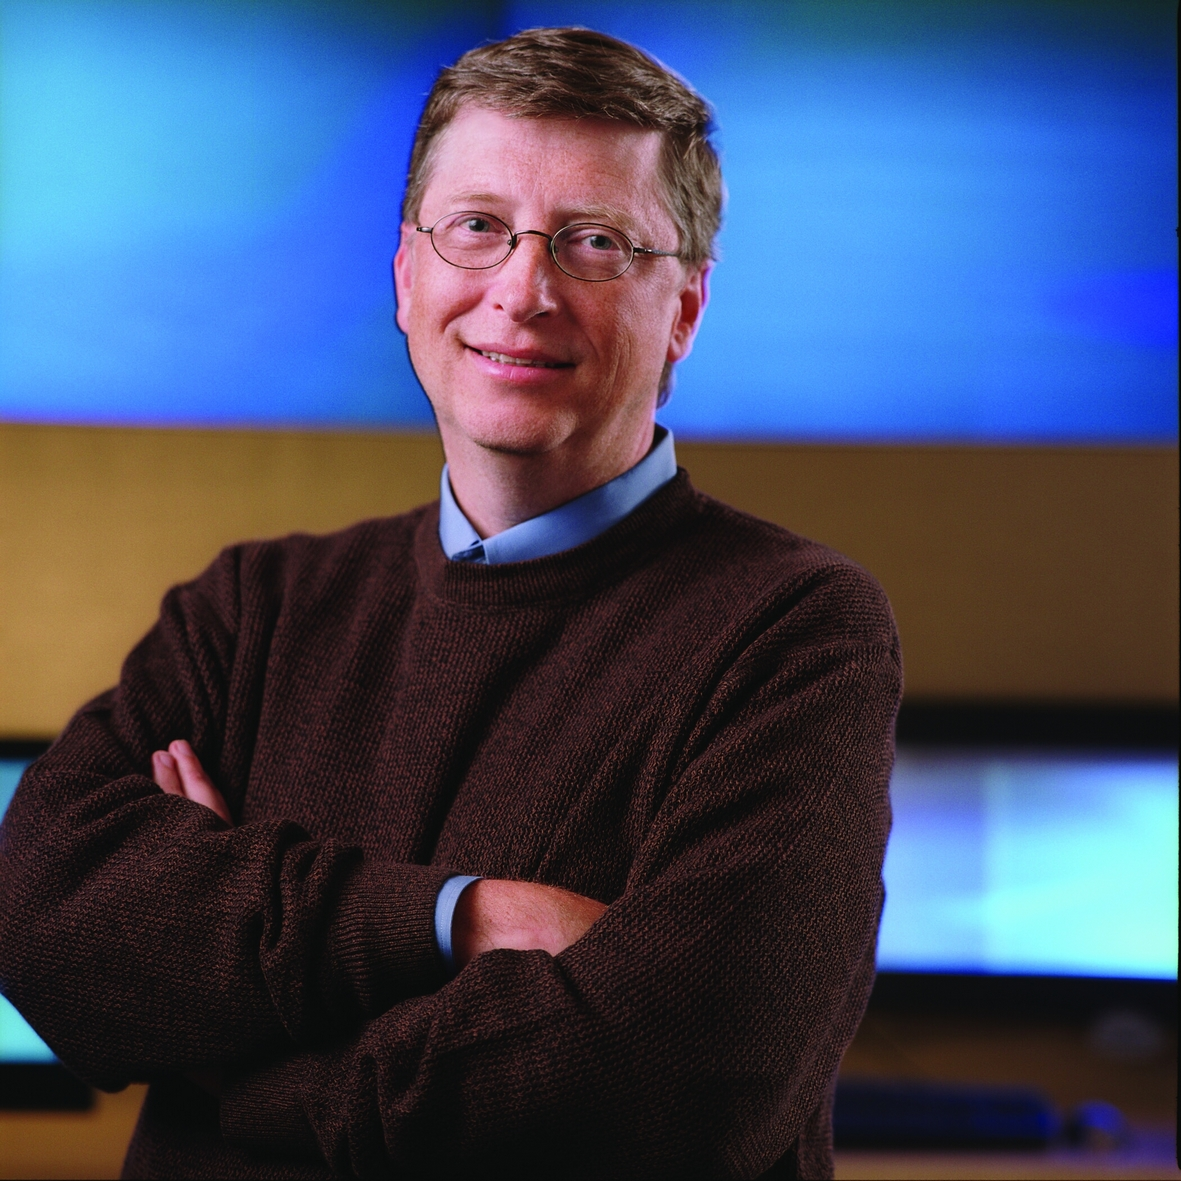 top 8 quotes from the famous entrepreneurs iblune it s fine to celebrate success but it is more important to heed the lessons of failure bill gates ldquo